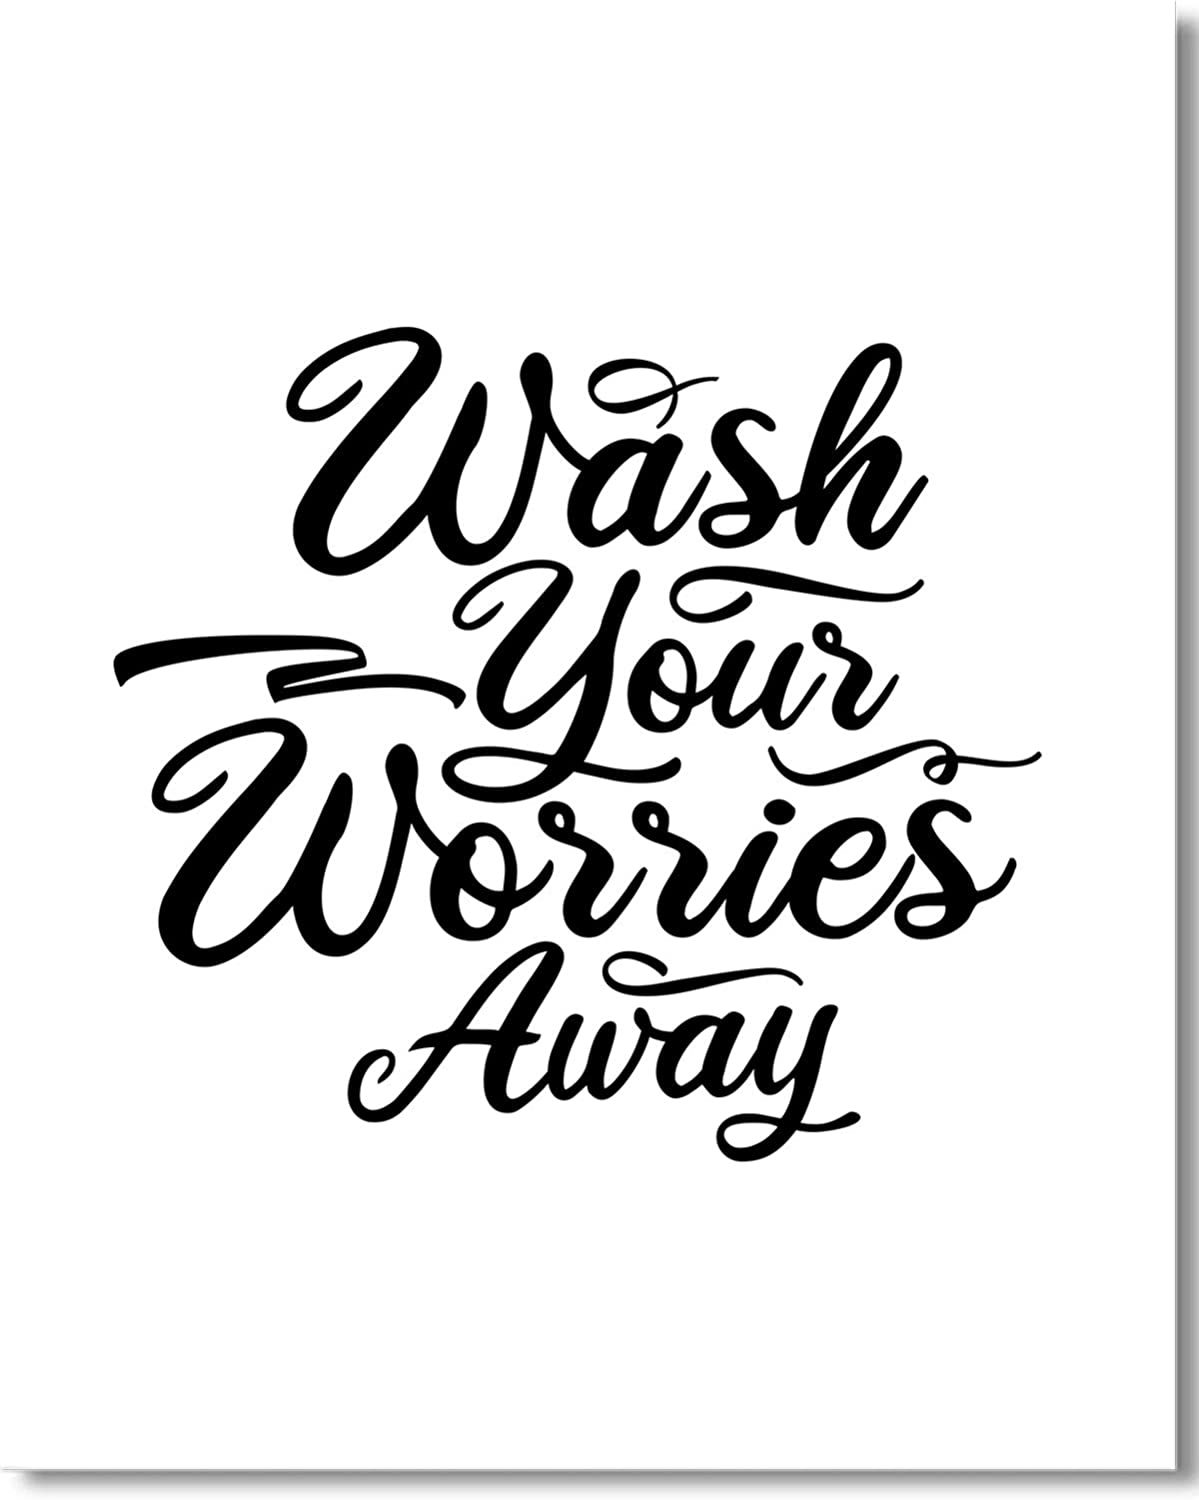 Wash Your Worries Away - Wall Decor Art Print - 16x20-inch unframed poster - Great decor for bathroom or powder room